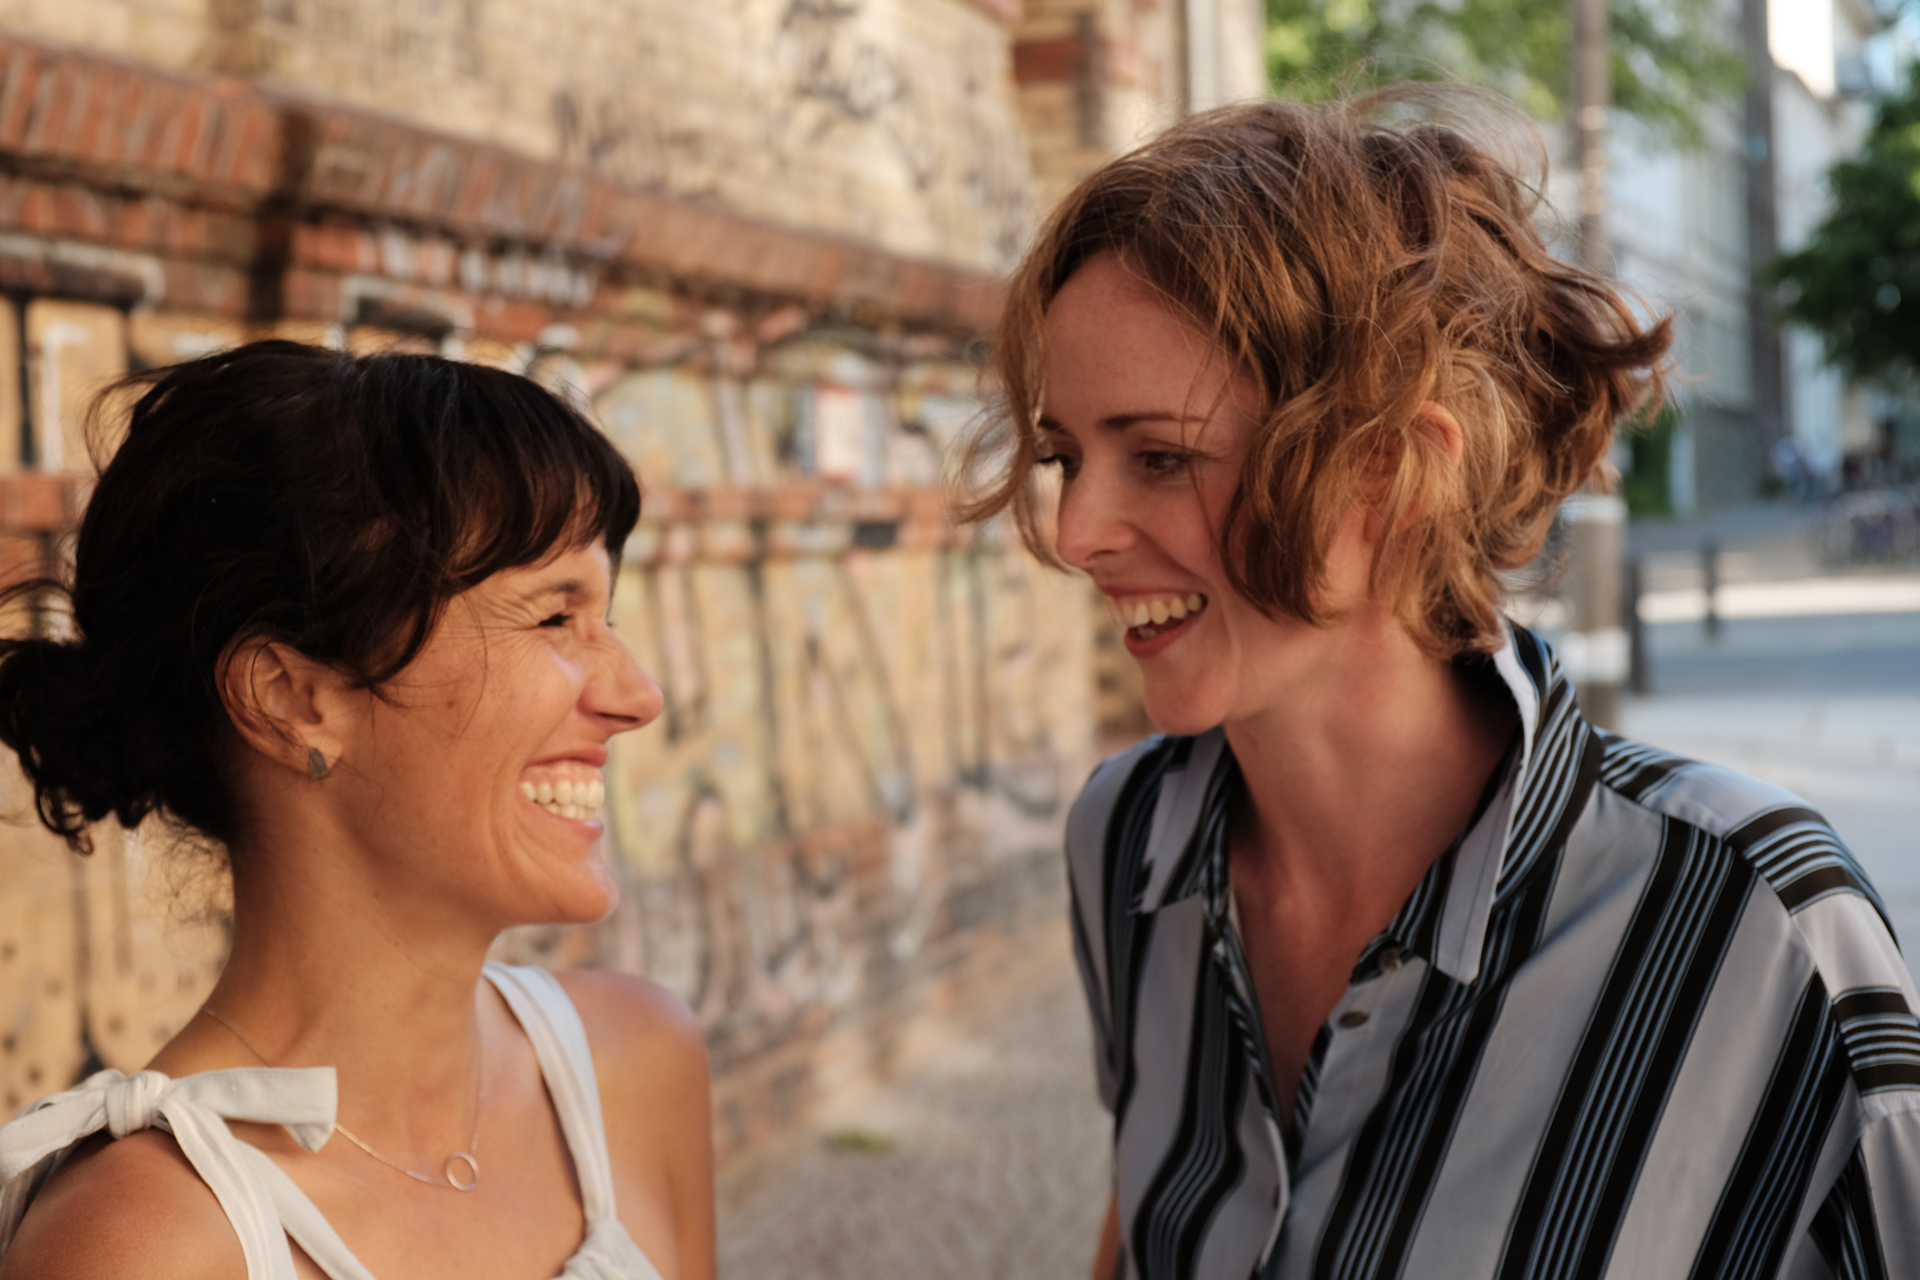 Carlin Greenstein and Alanna Lawley together for their Berlin Guide on Foodadit and Inside Out Paris